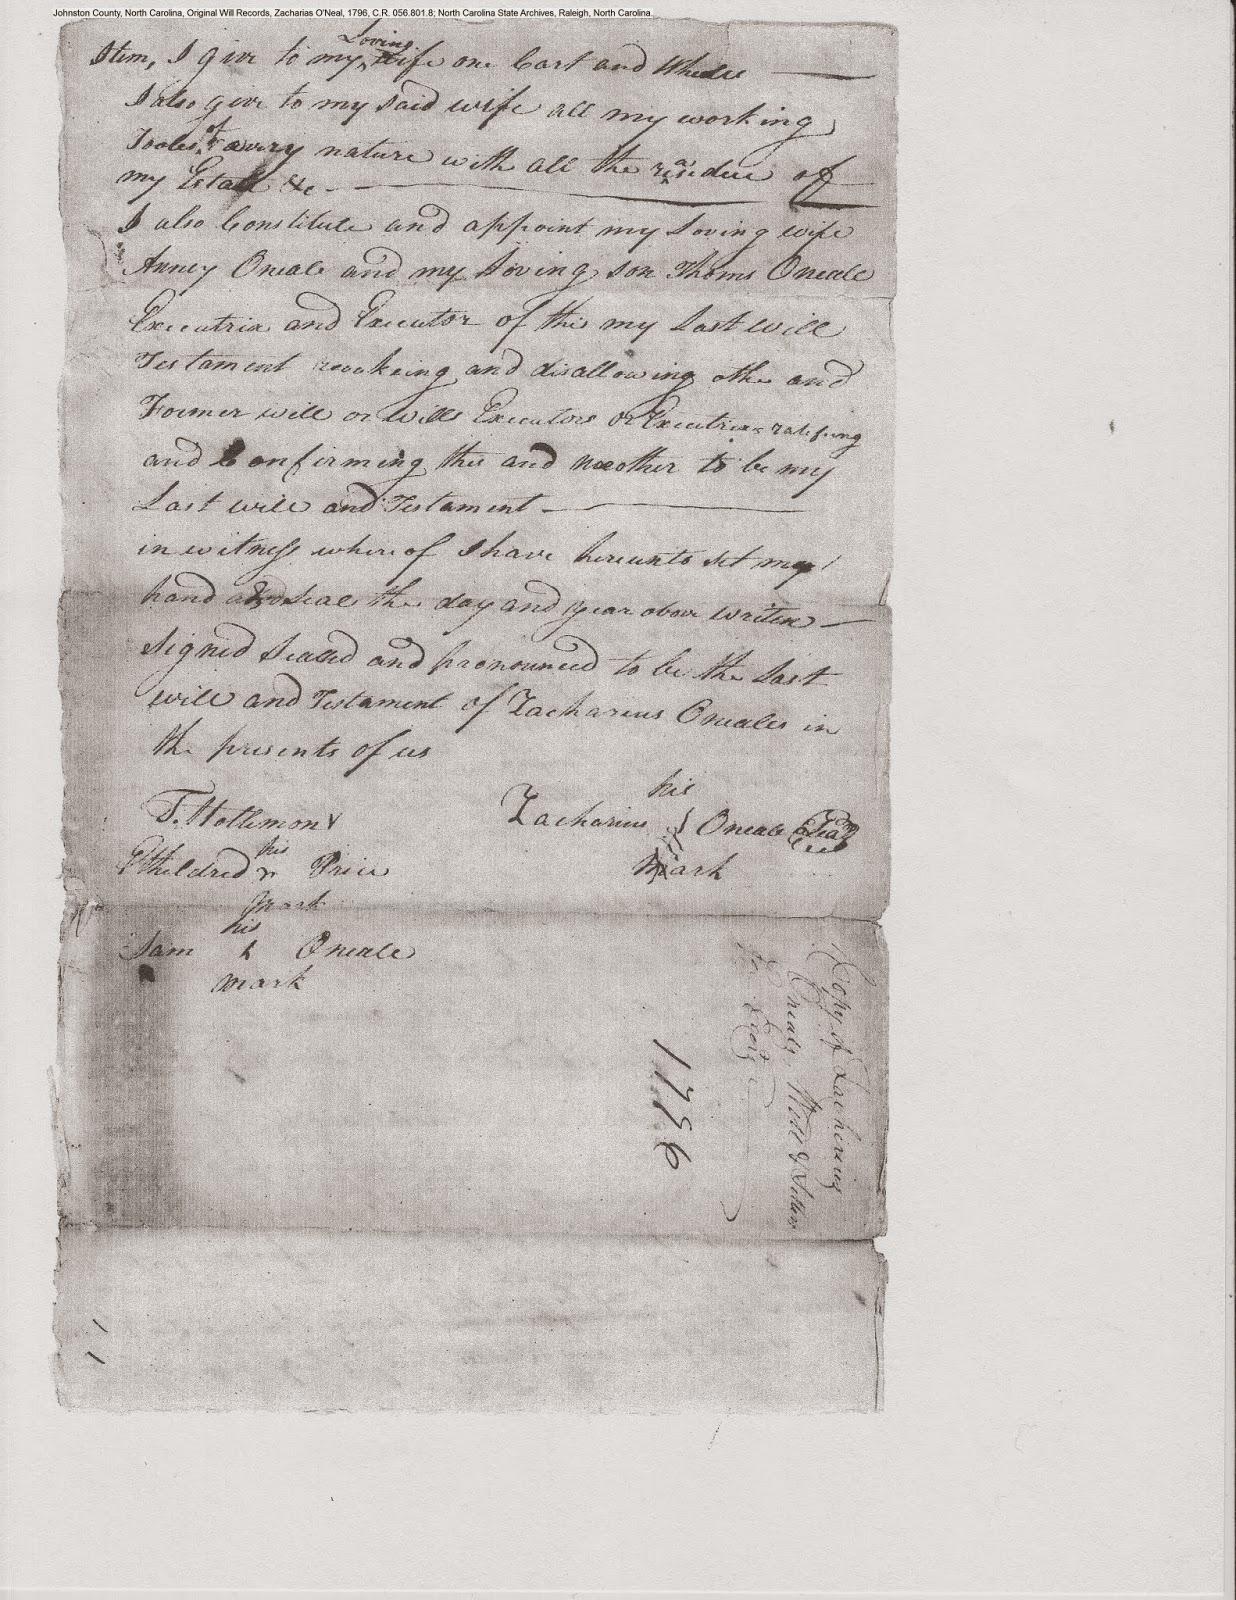 Zachariah O'Neal's will, Johnston Co., NC, 1796, p. 4